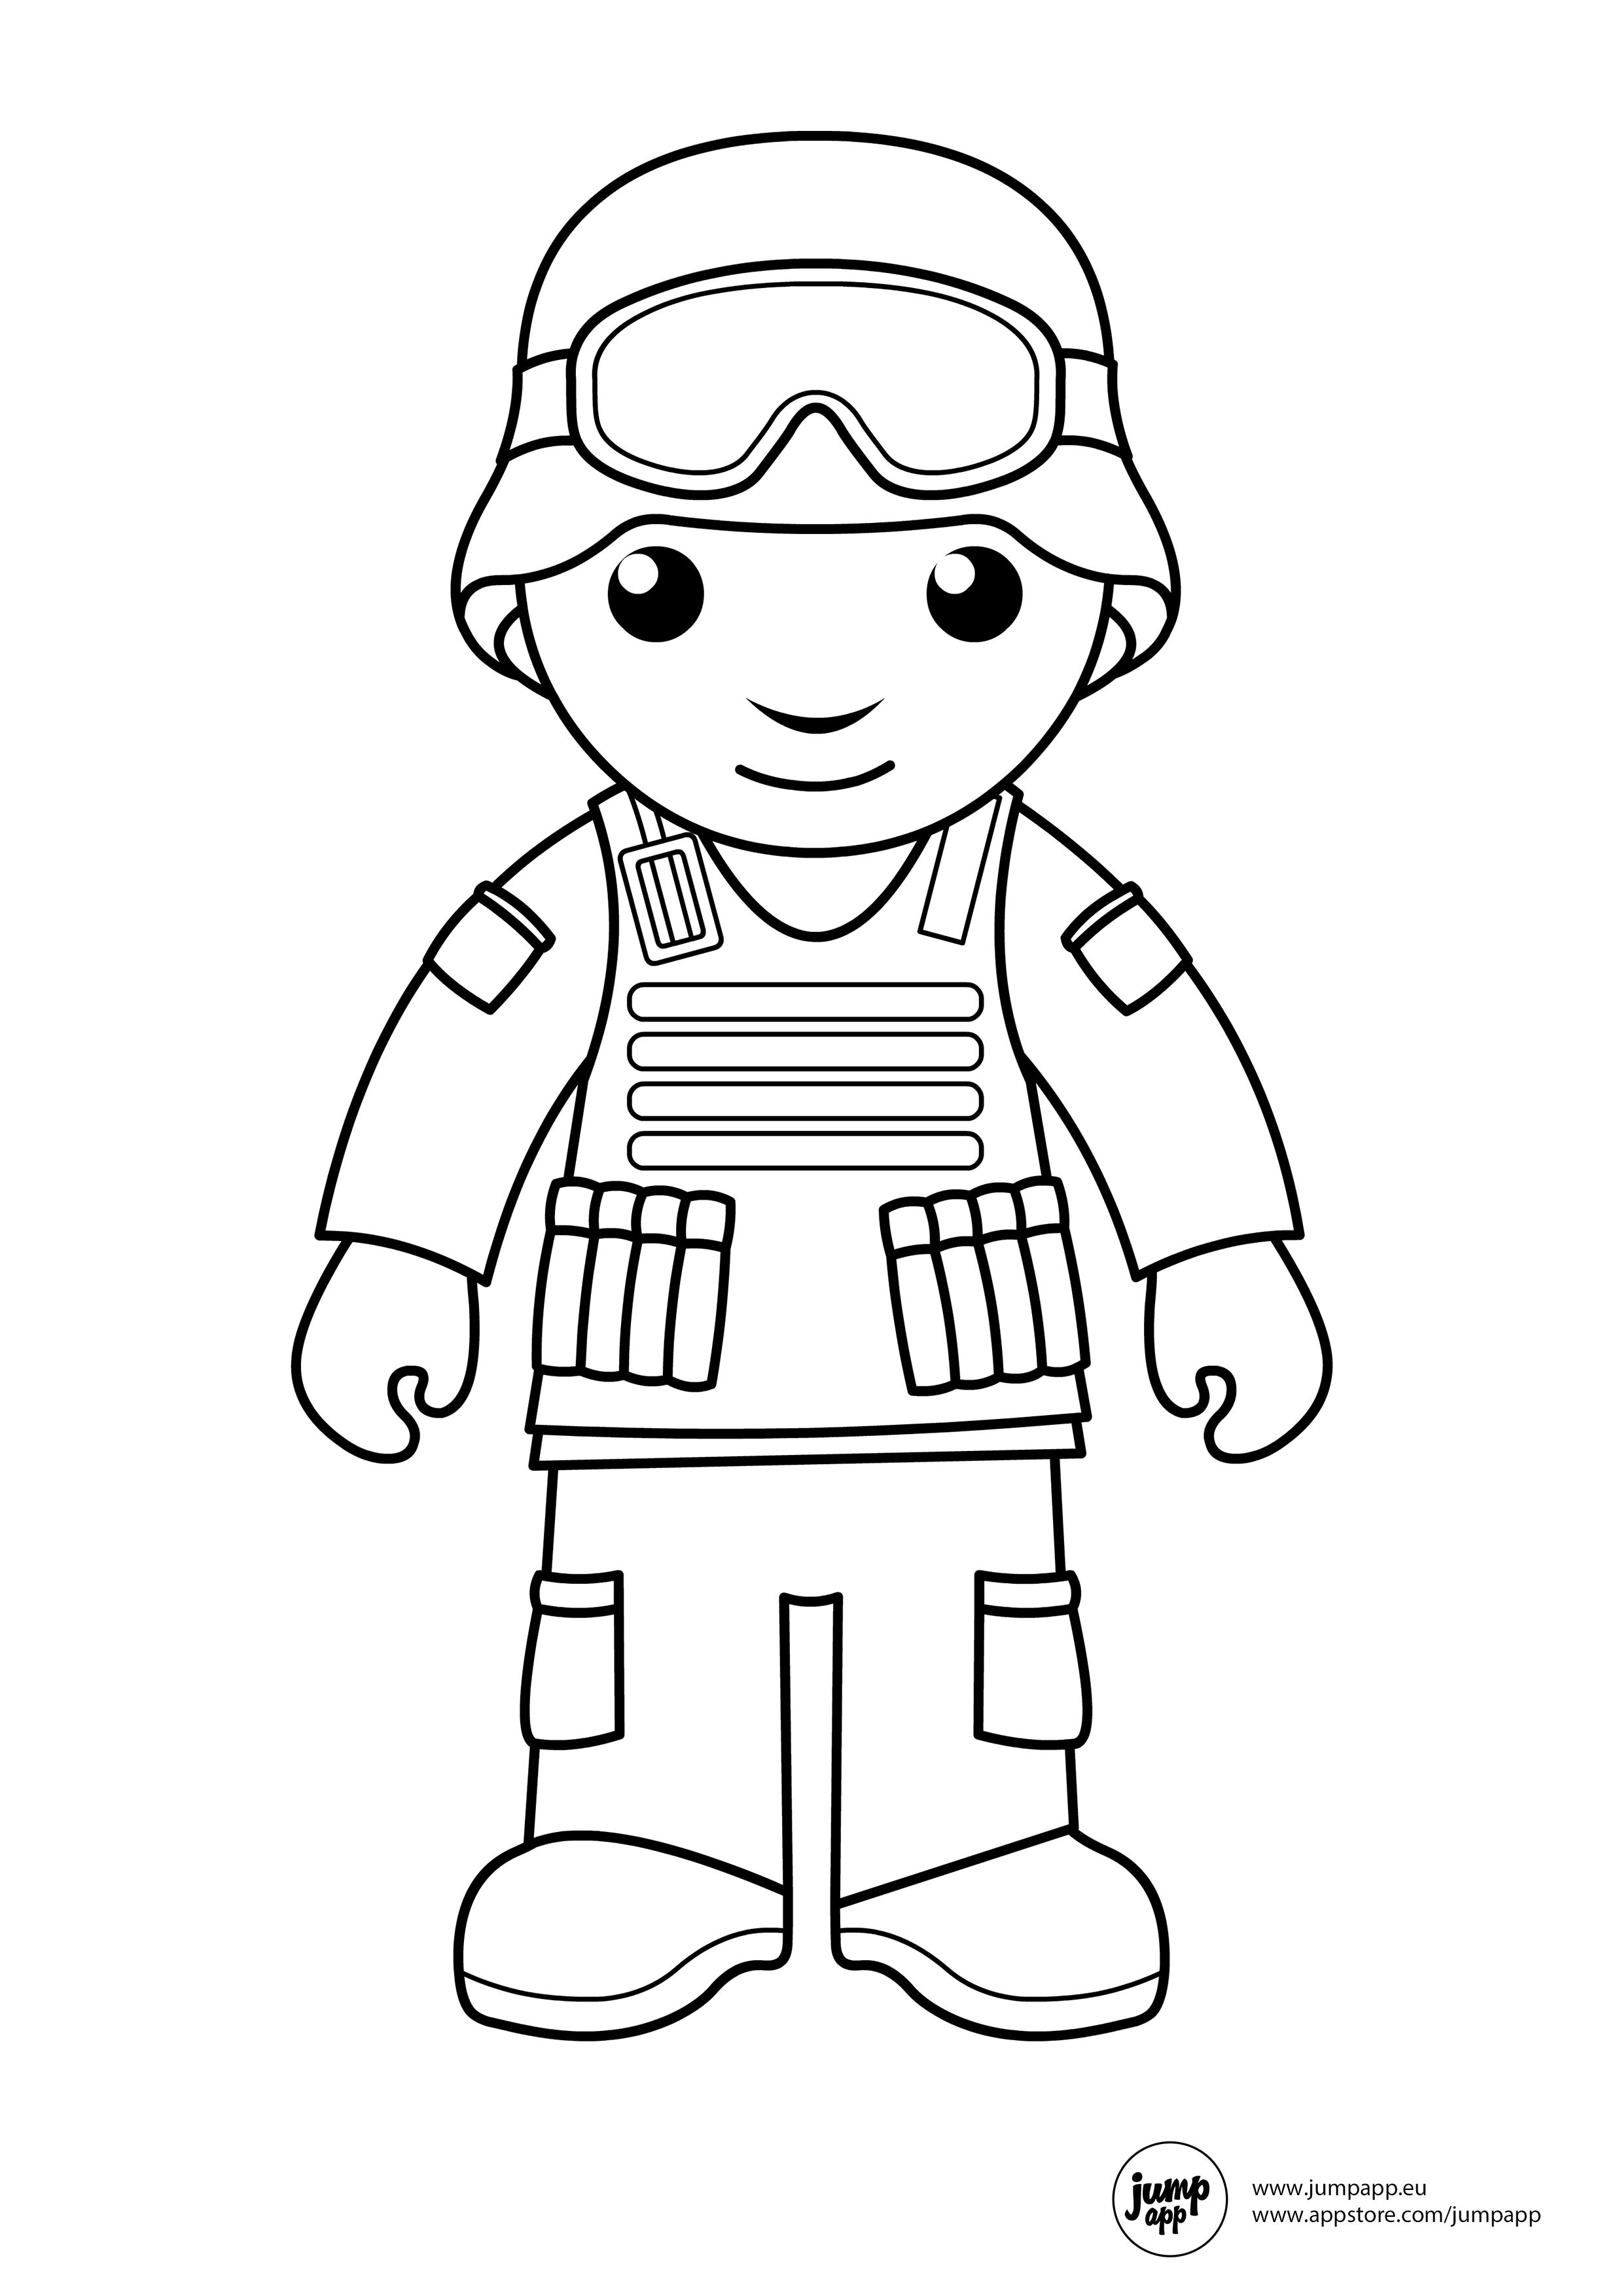 Soldier coloring clipart svg free soldier | Printable Coloring Pages | Coloring pictures for ... svg free